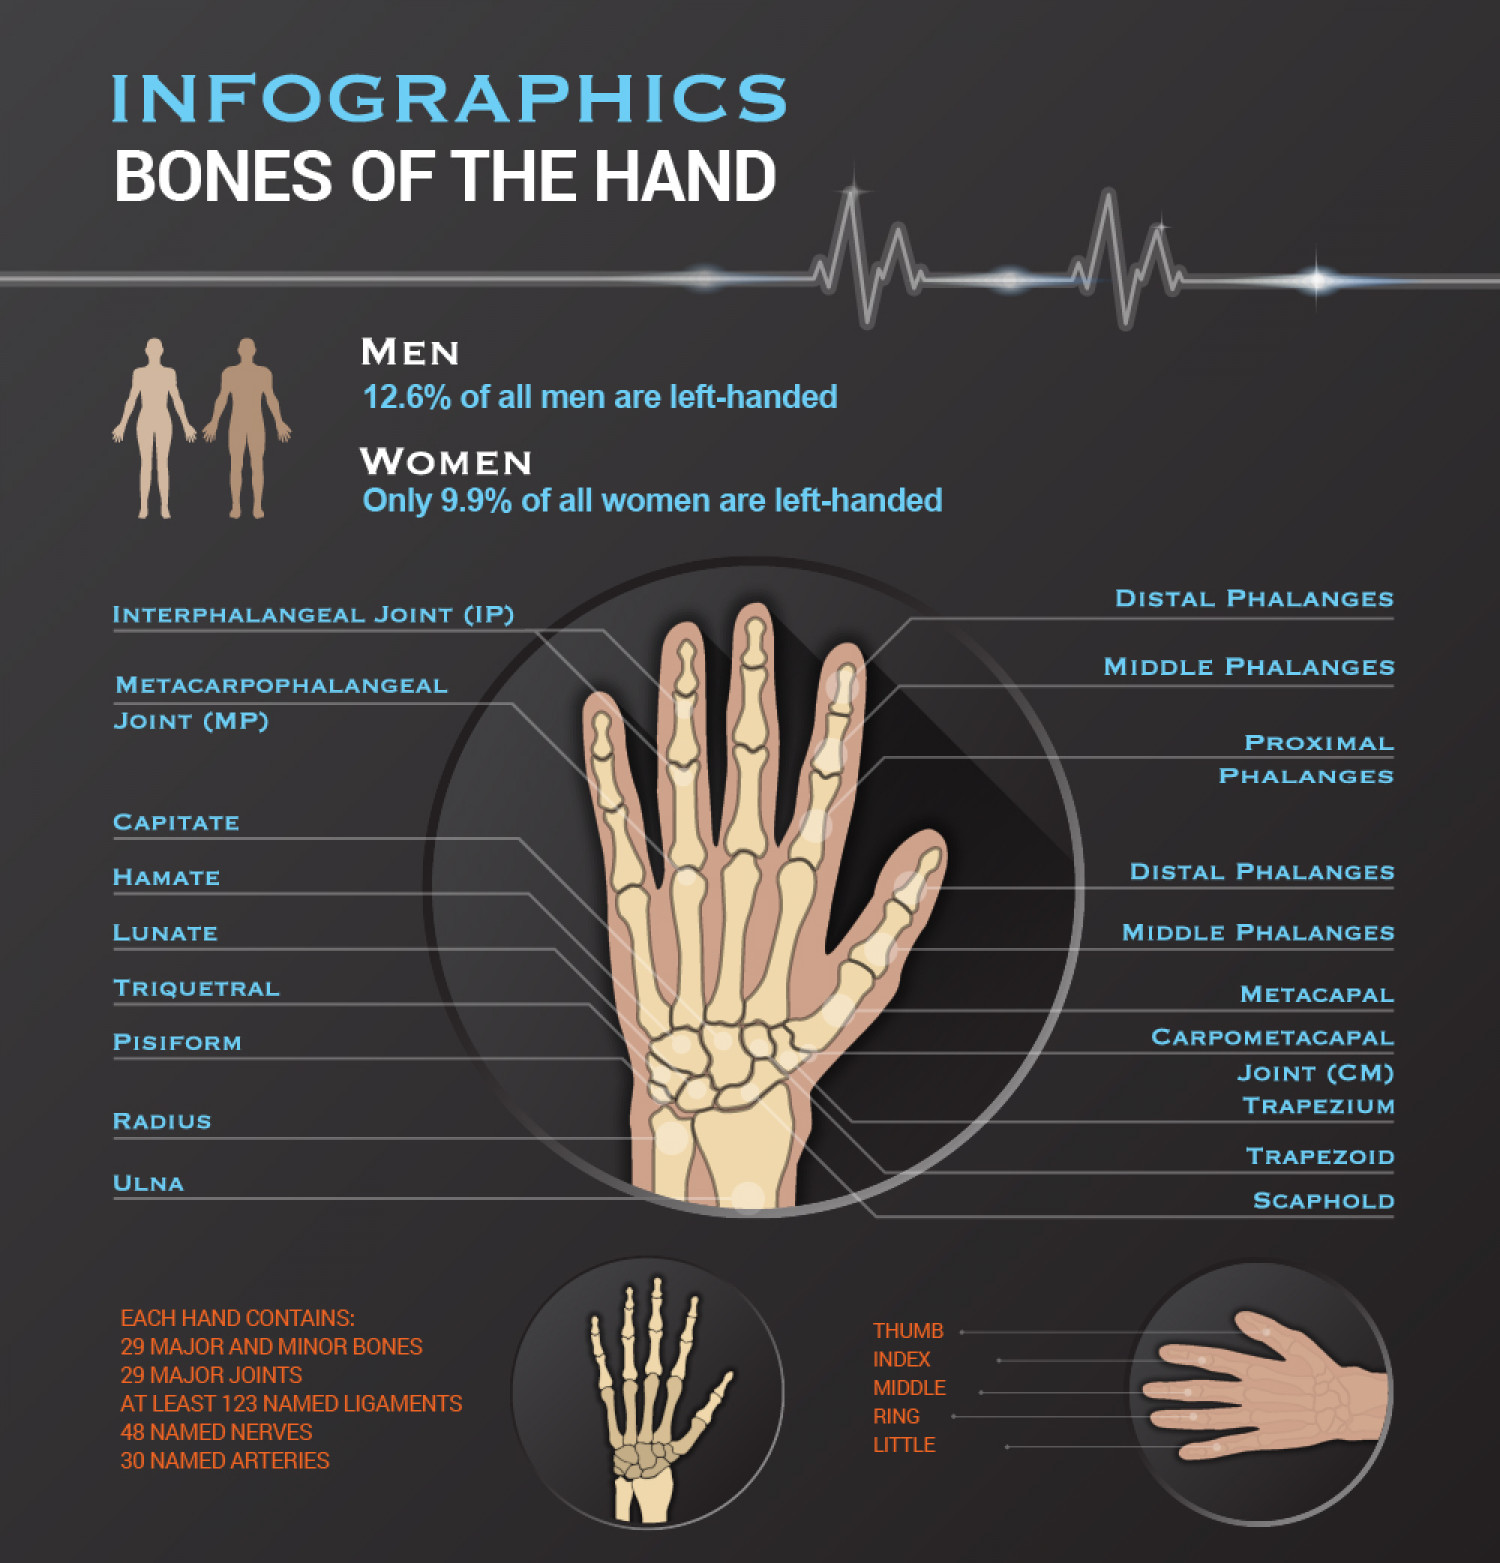 Bones of the Hand Infographic